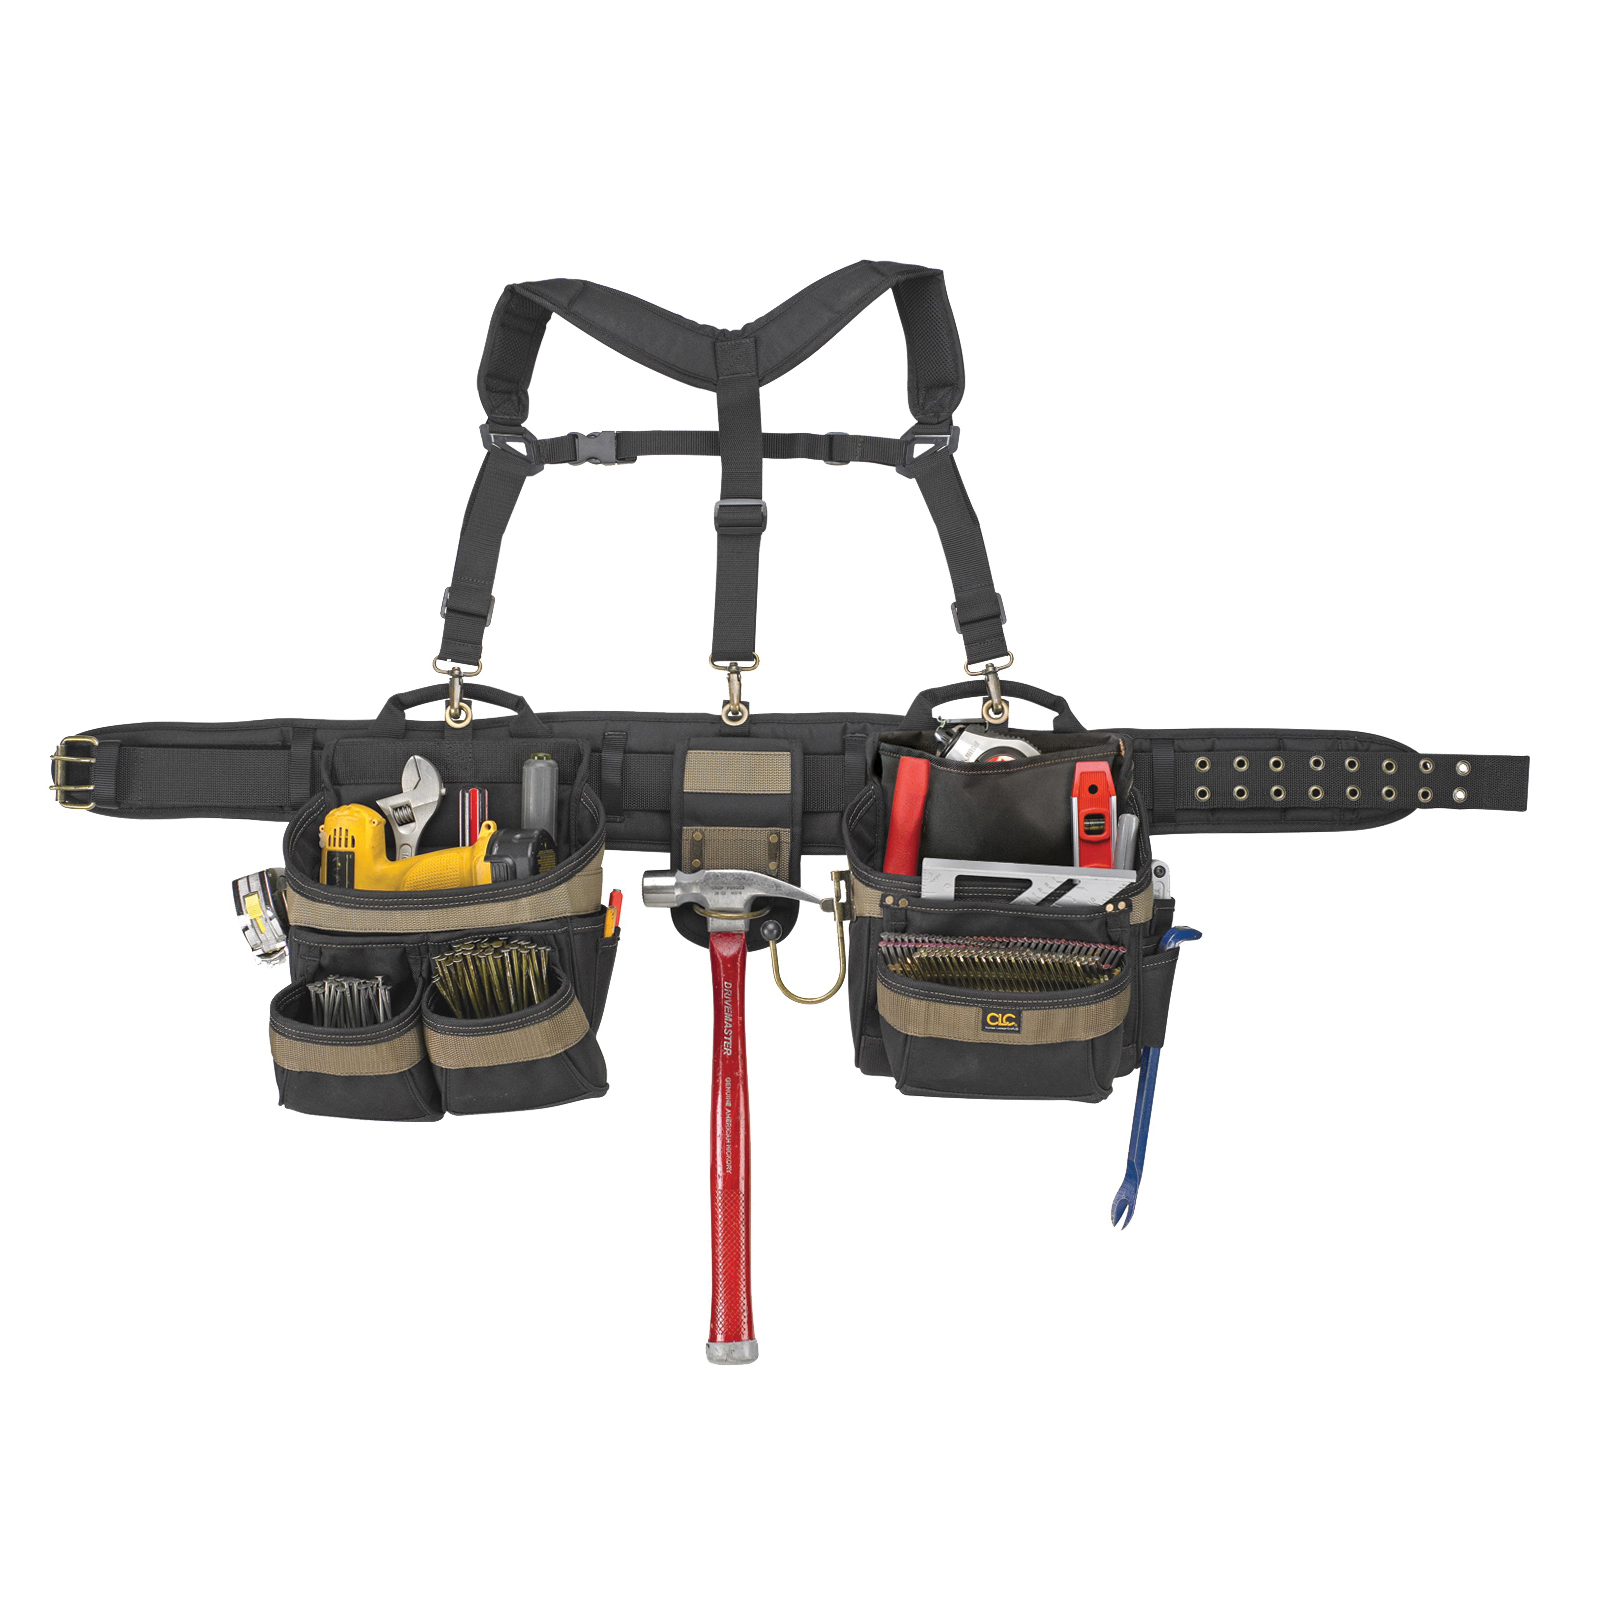 Picture of CLC Tool Works 6714 Tool Belt, 29 to 46 in Waist, Polyester, Black/Khaki, 31 -Pocket